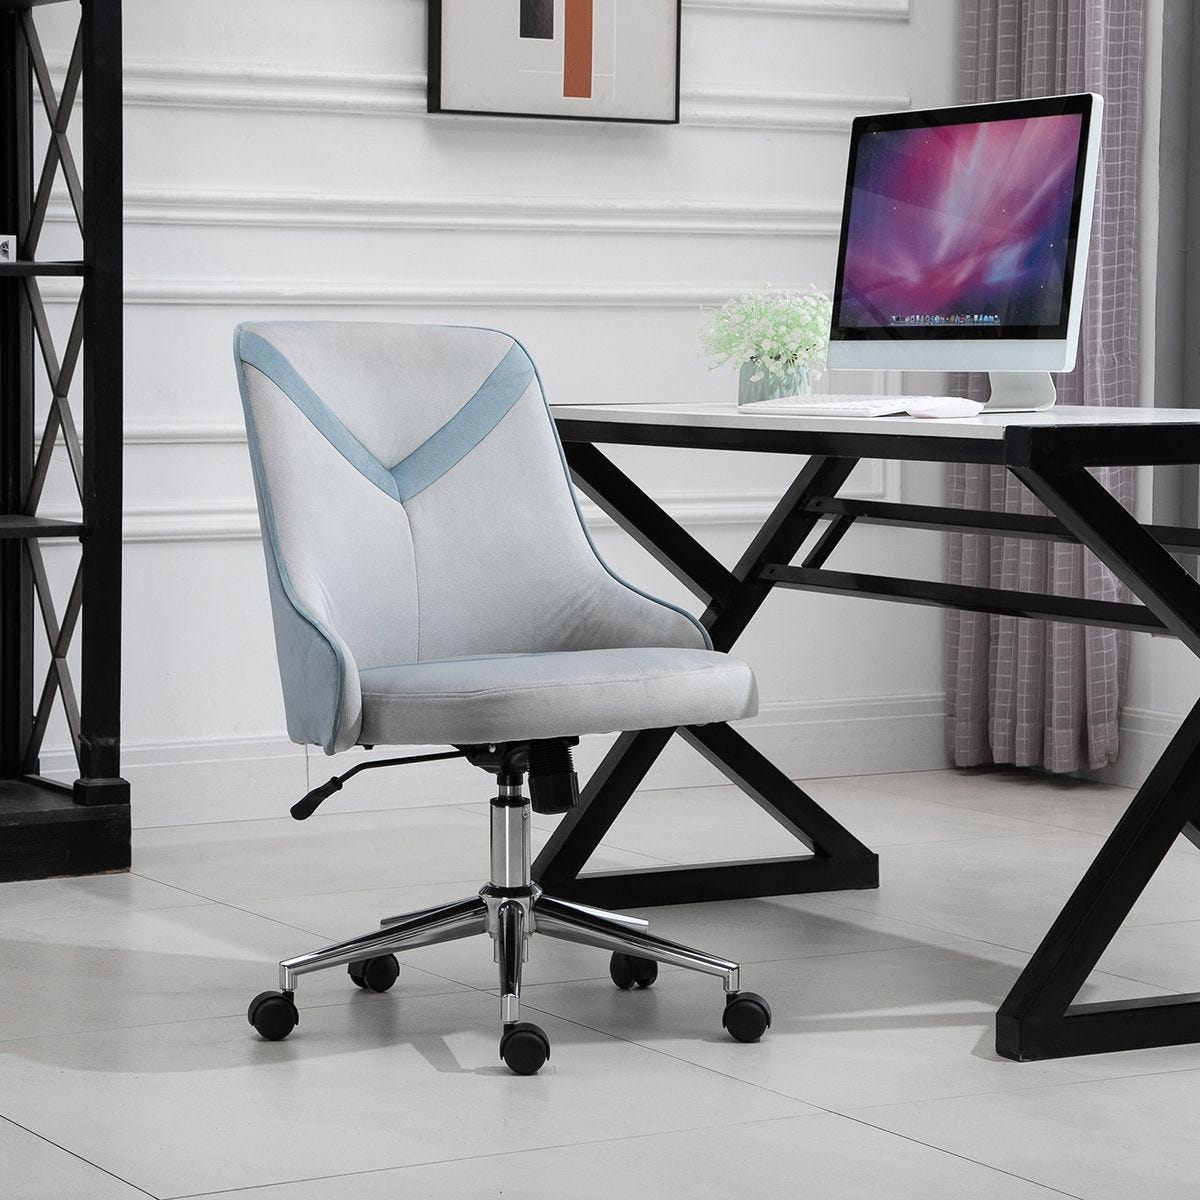 Office Chair Velvet Armless Rocker With Wheels Grey And Blue